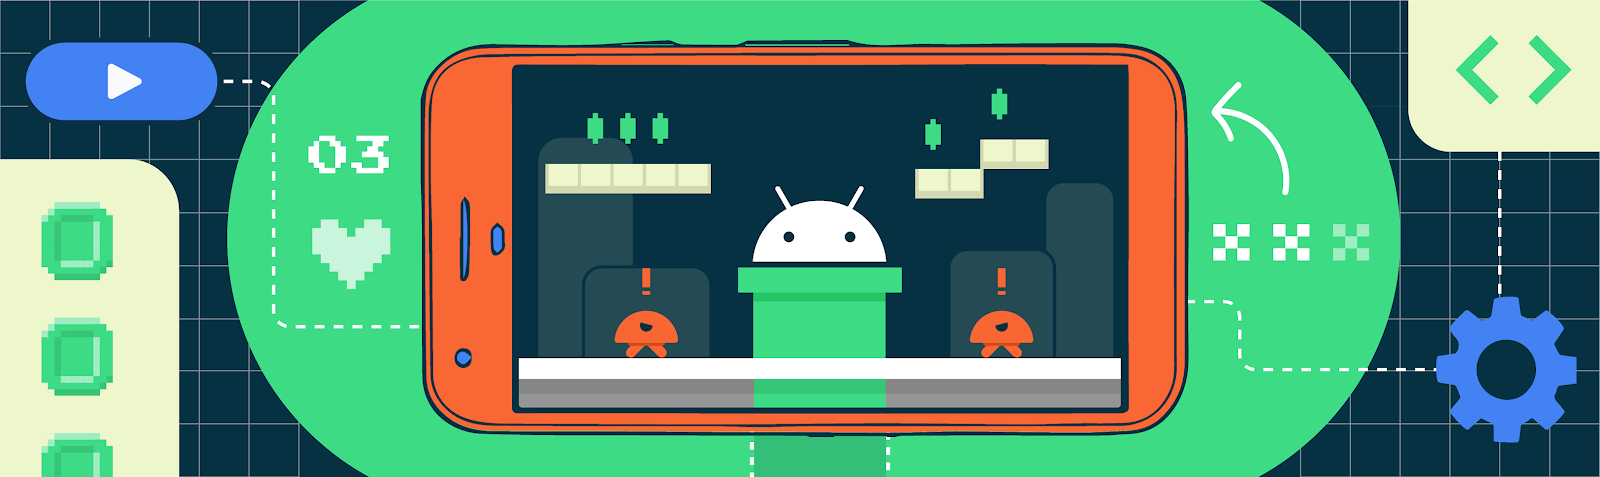 What S New In Android Gaming Internet Technology News